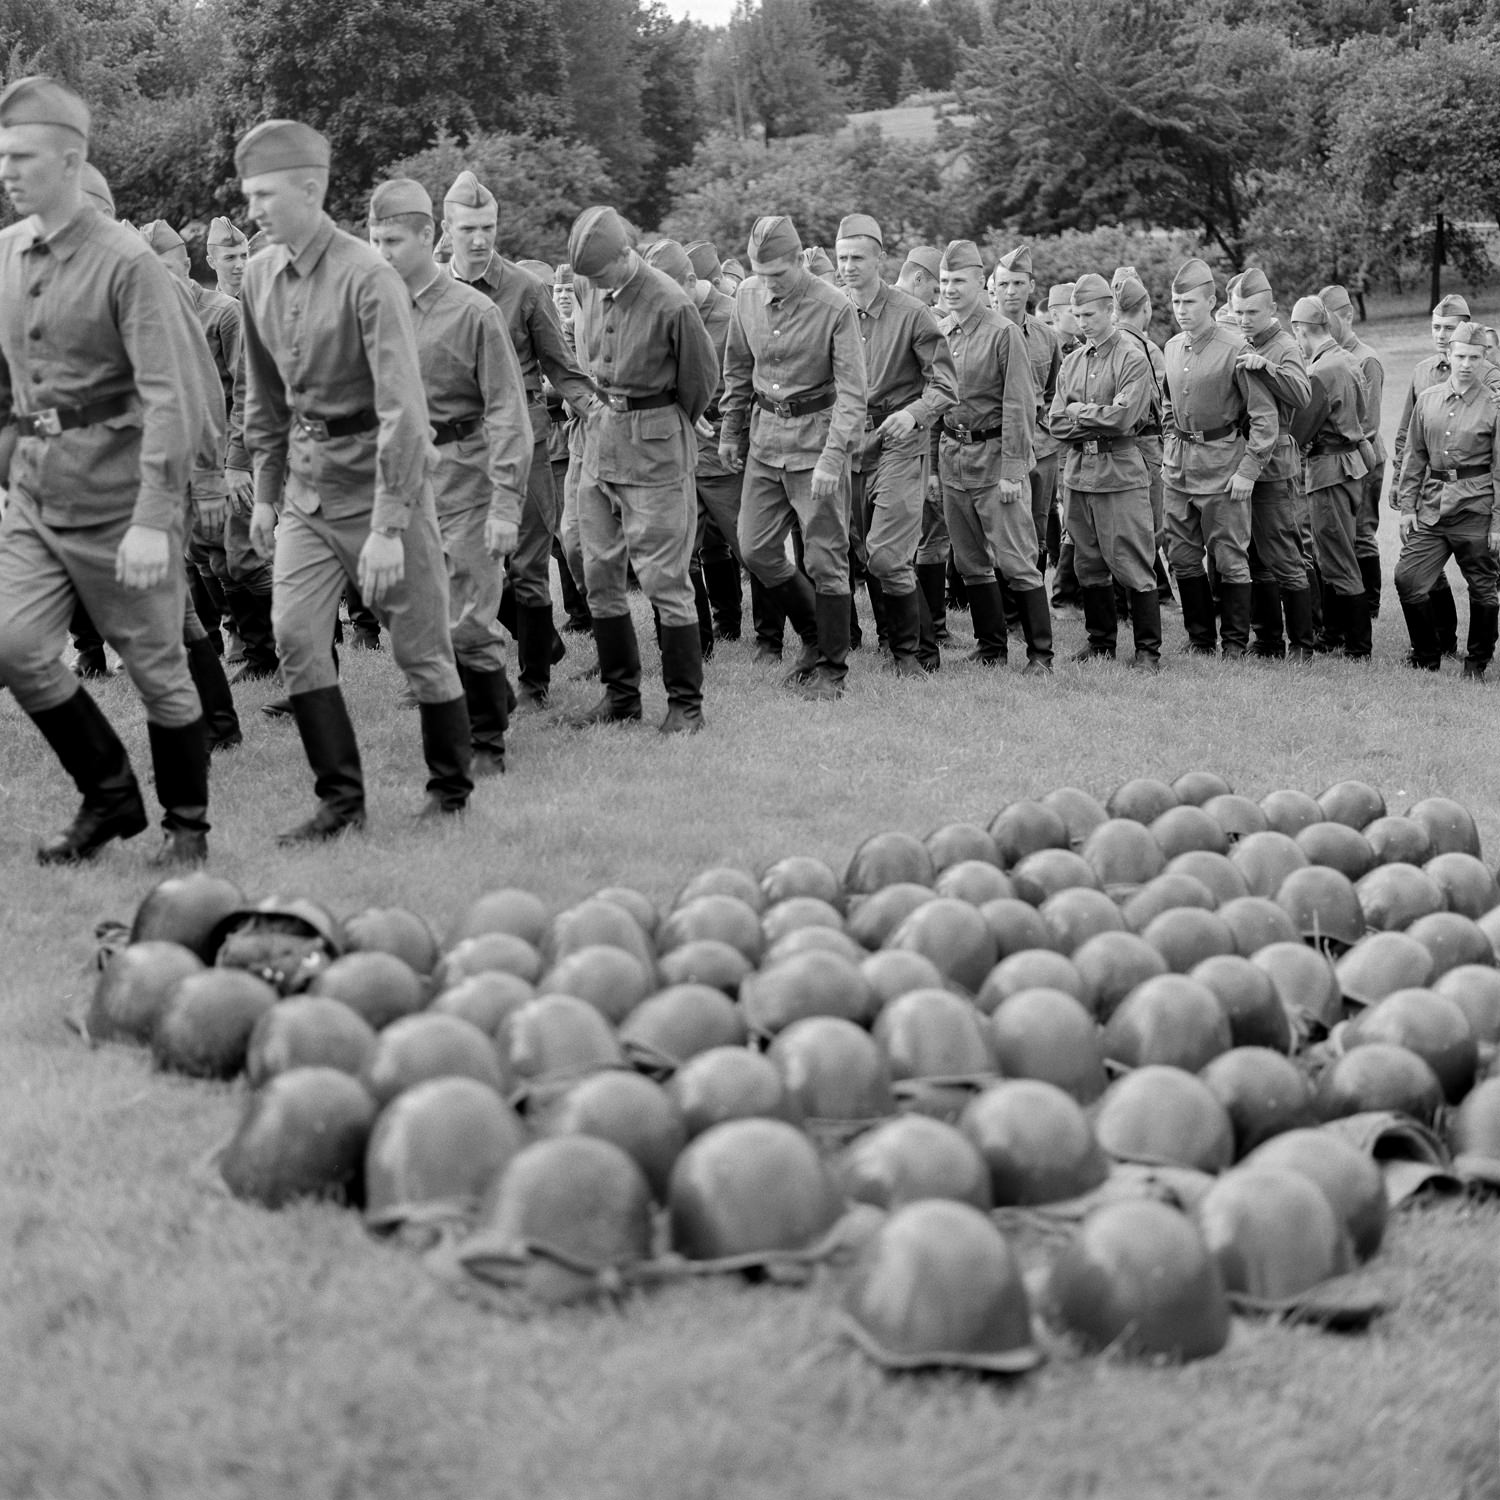 Company of soldiers preparing for the military parade, helmets lie on the lawn on Indepedance Day celebration in Minsk